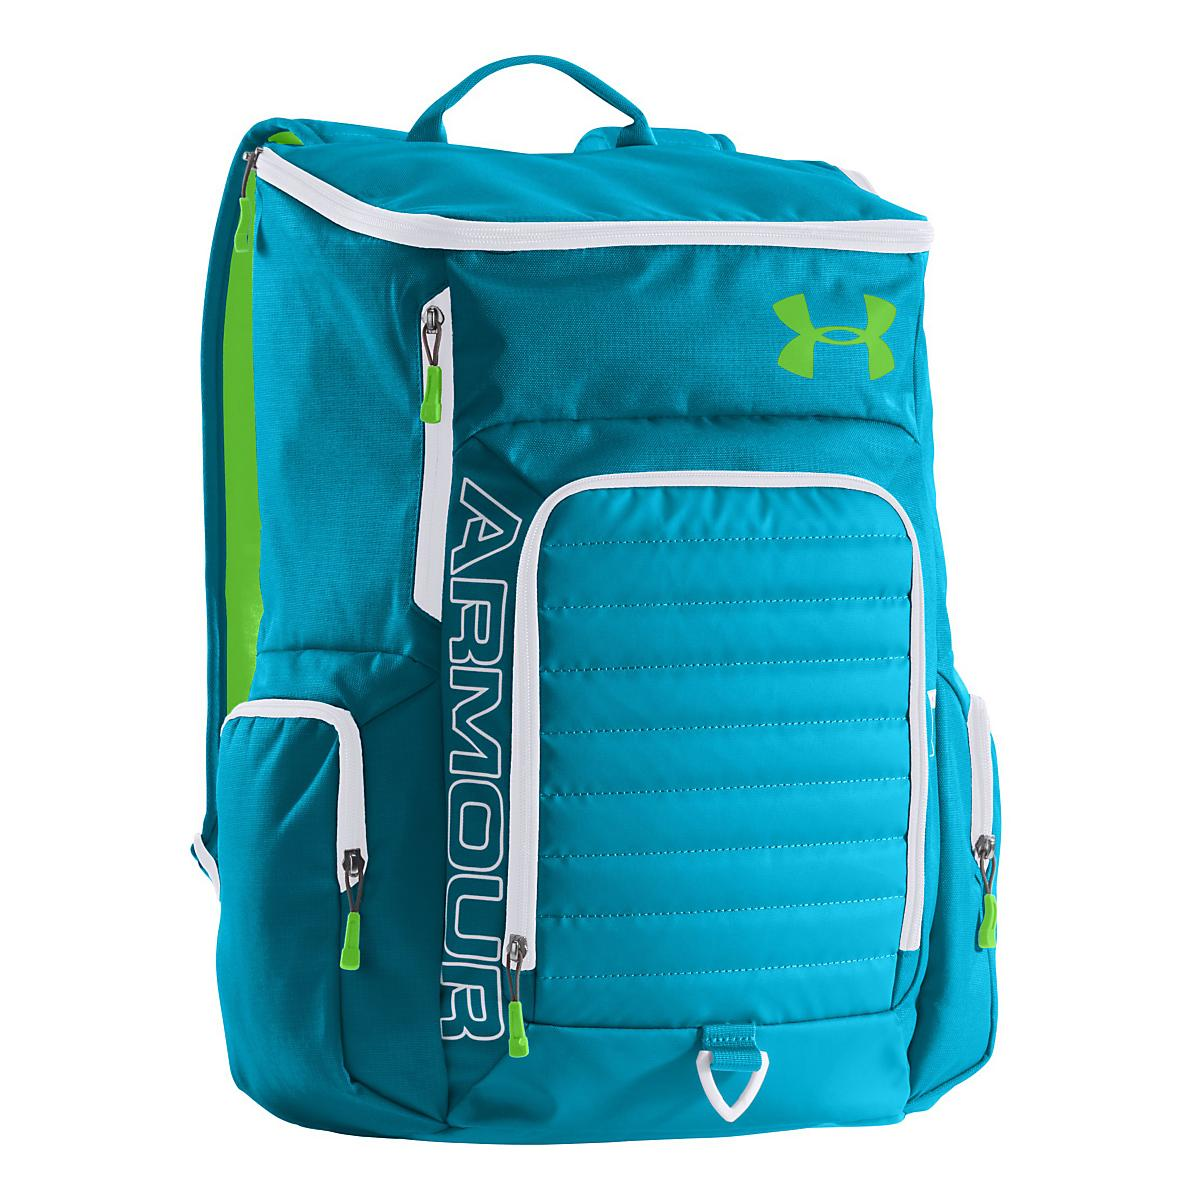 37ad97c45e Under Armour VX2-Undeniable Backpack Bags at Road Runner Sports